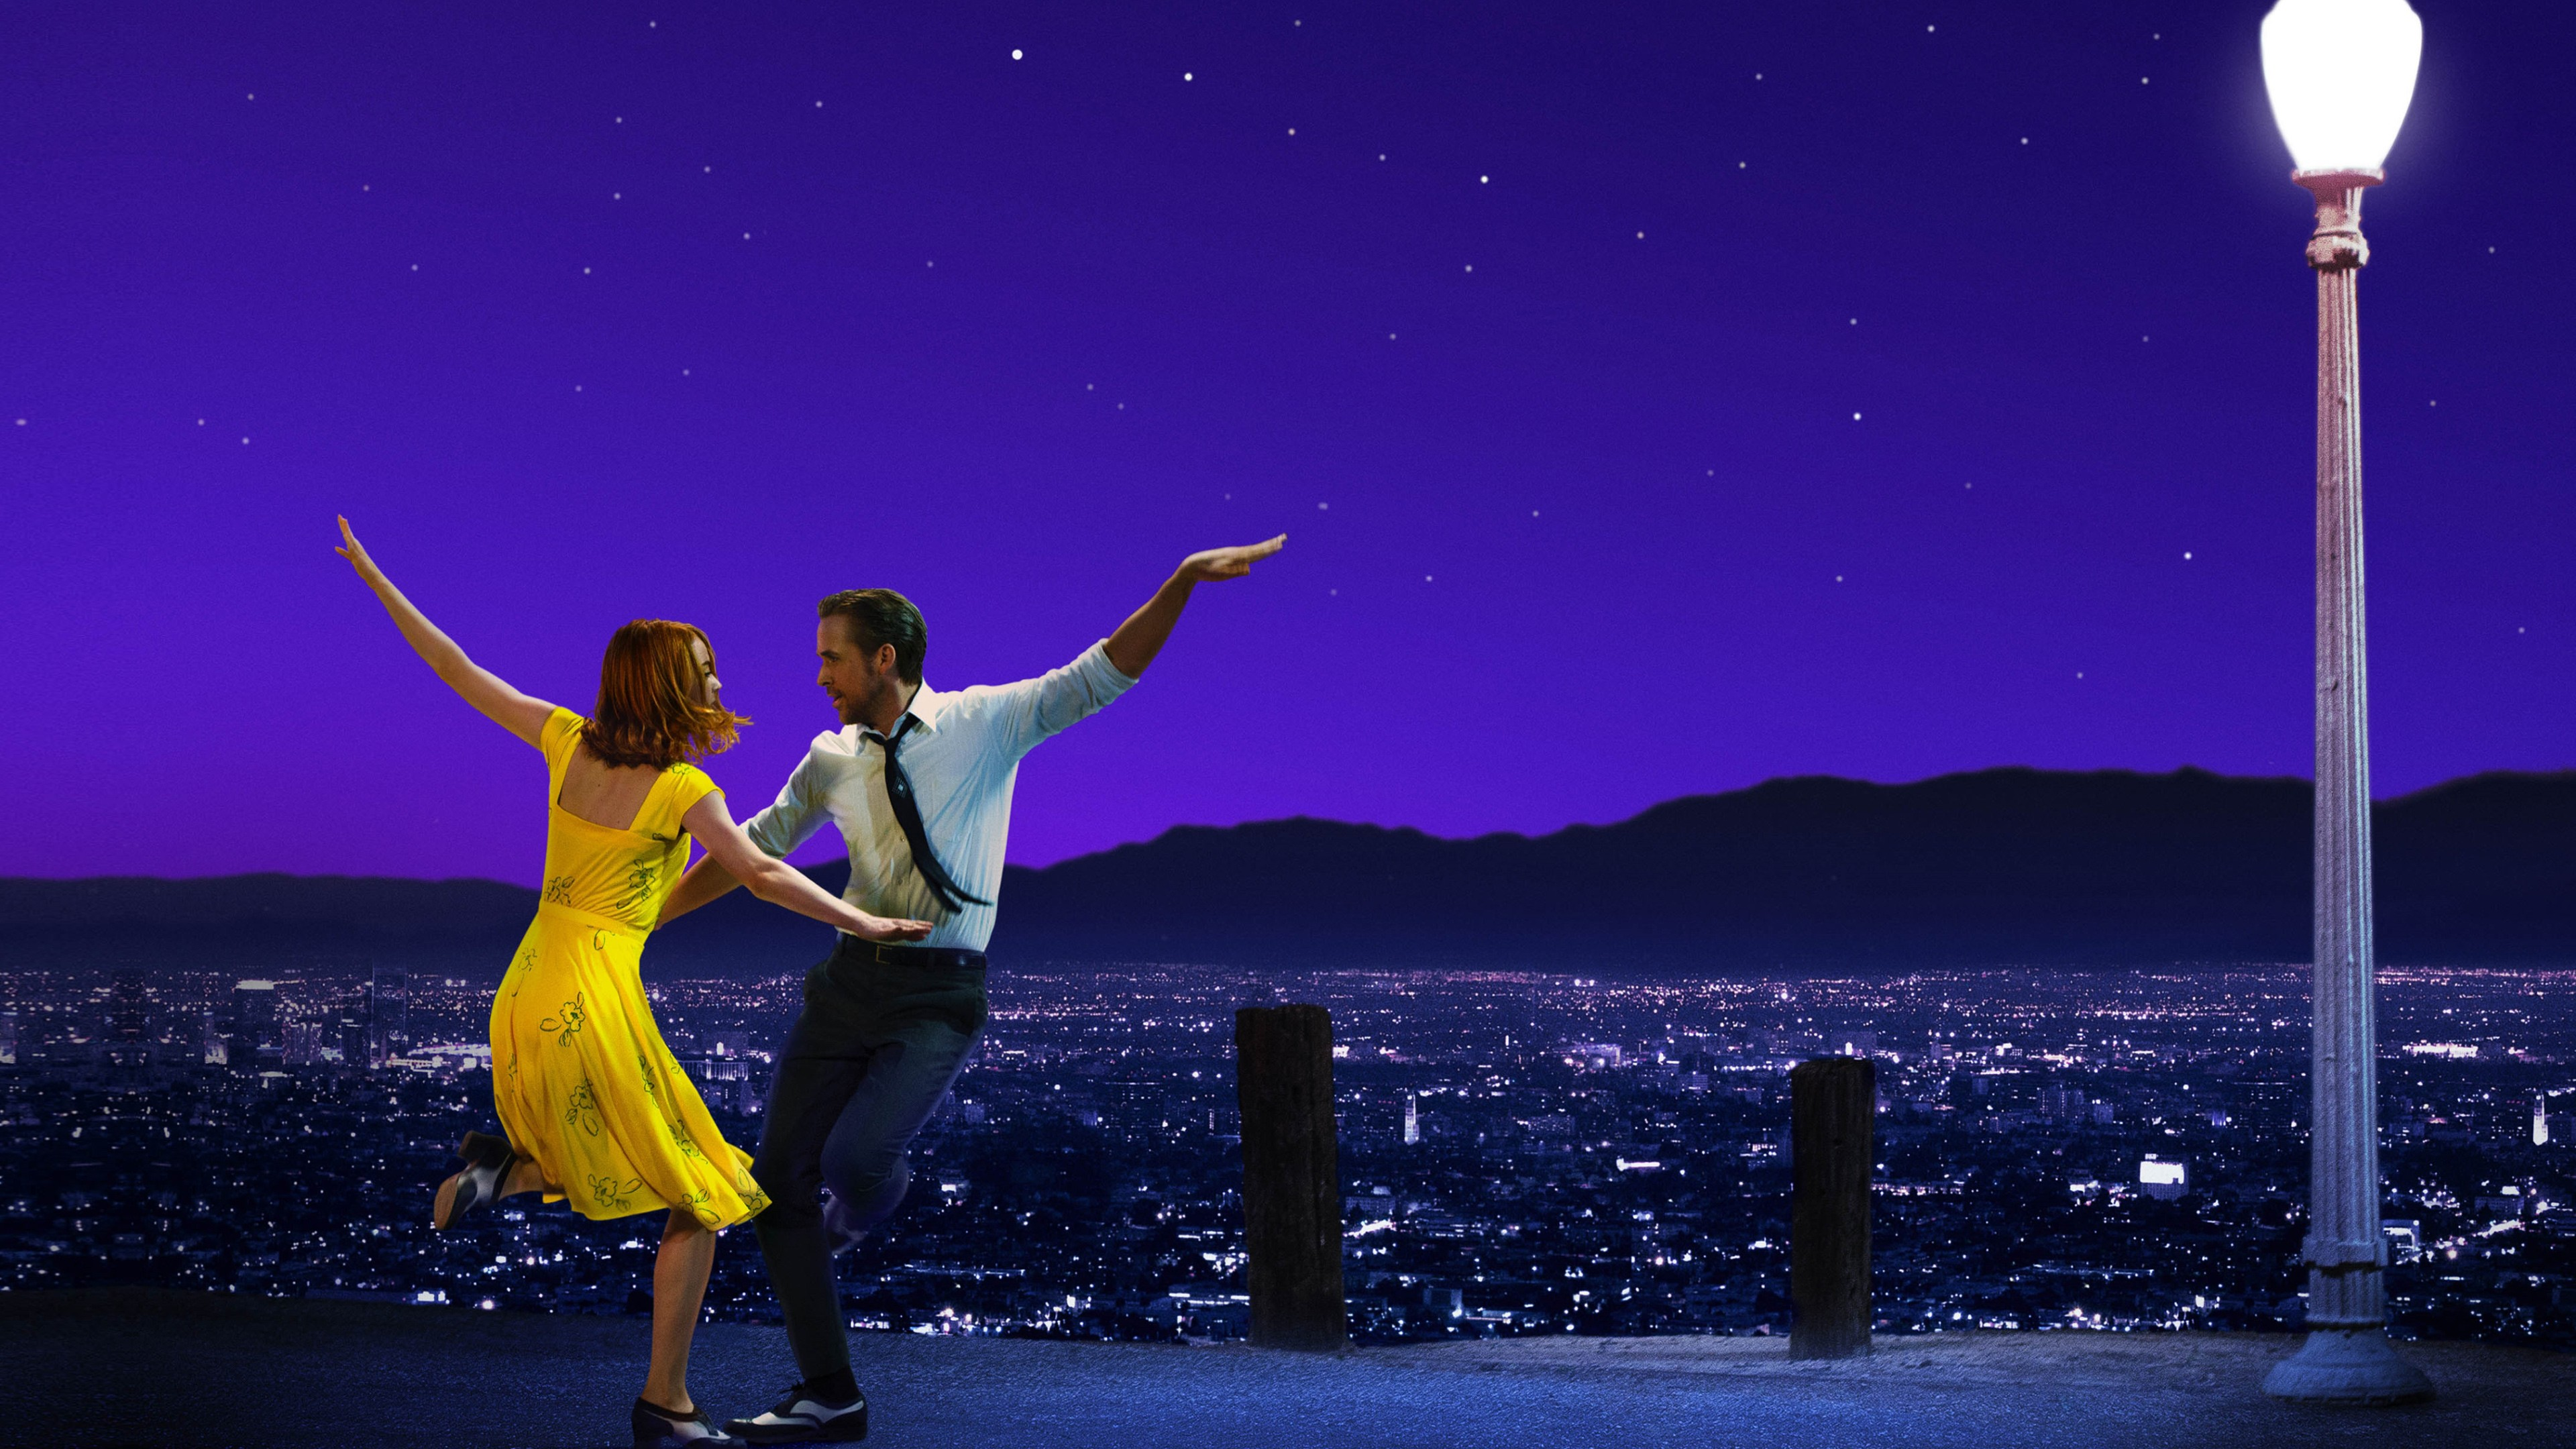 La La Land Ryan Gosling Emma Stone 4K Wallpaper 3840x2160